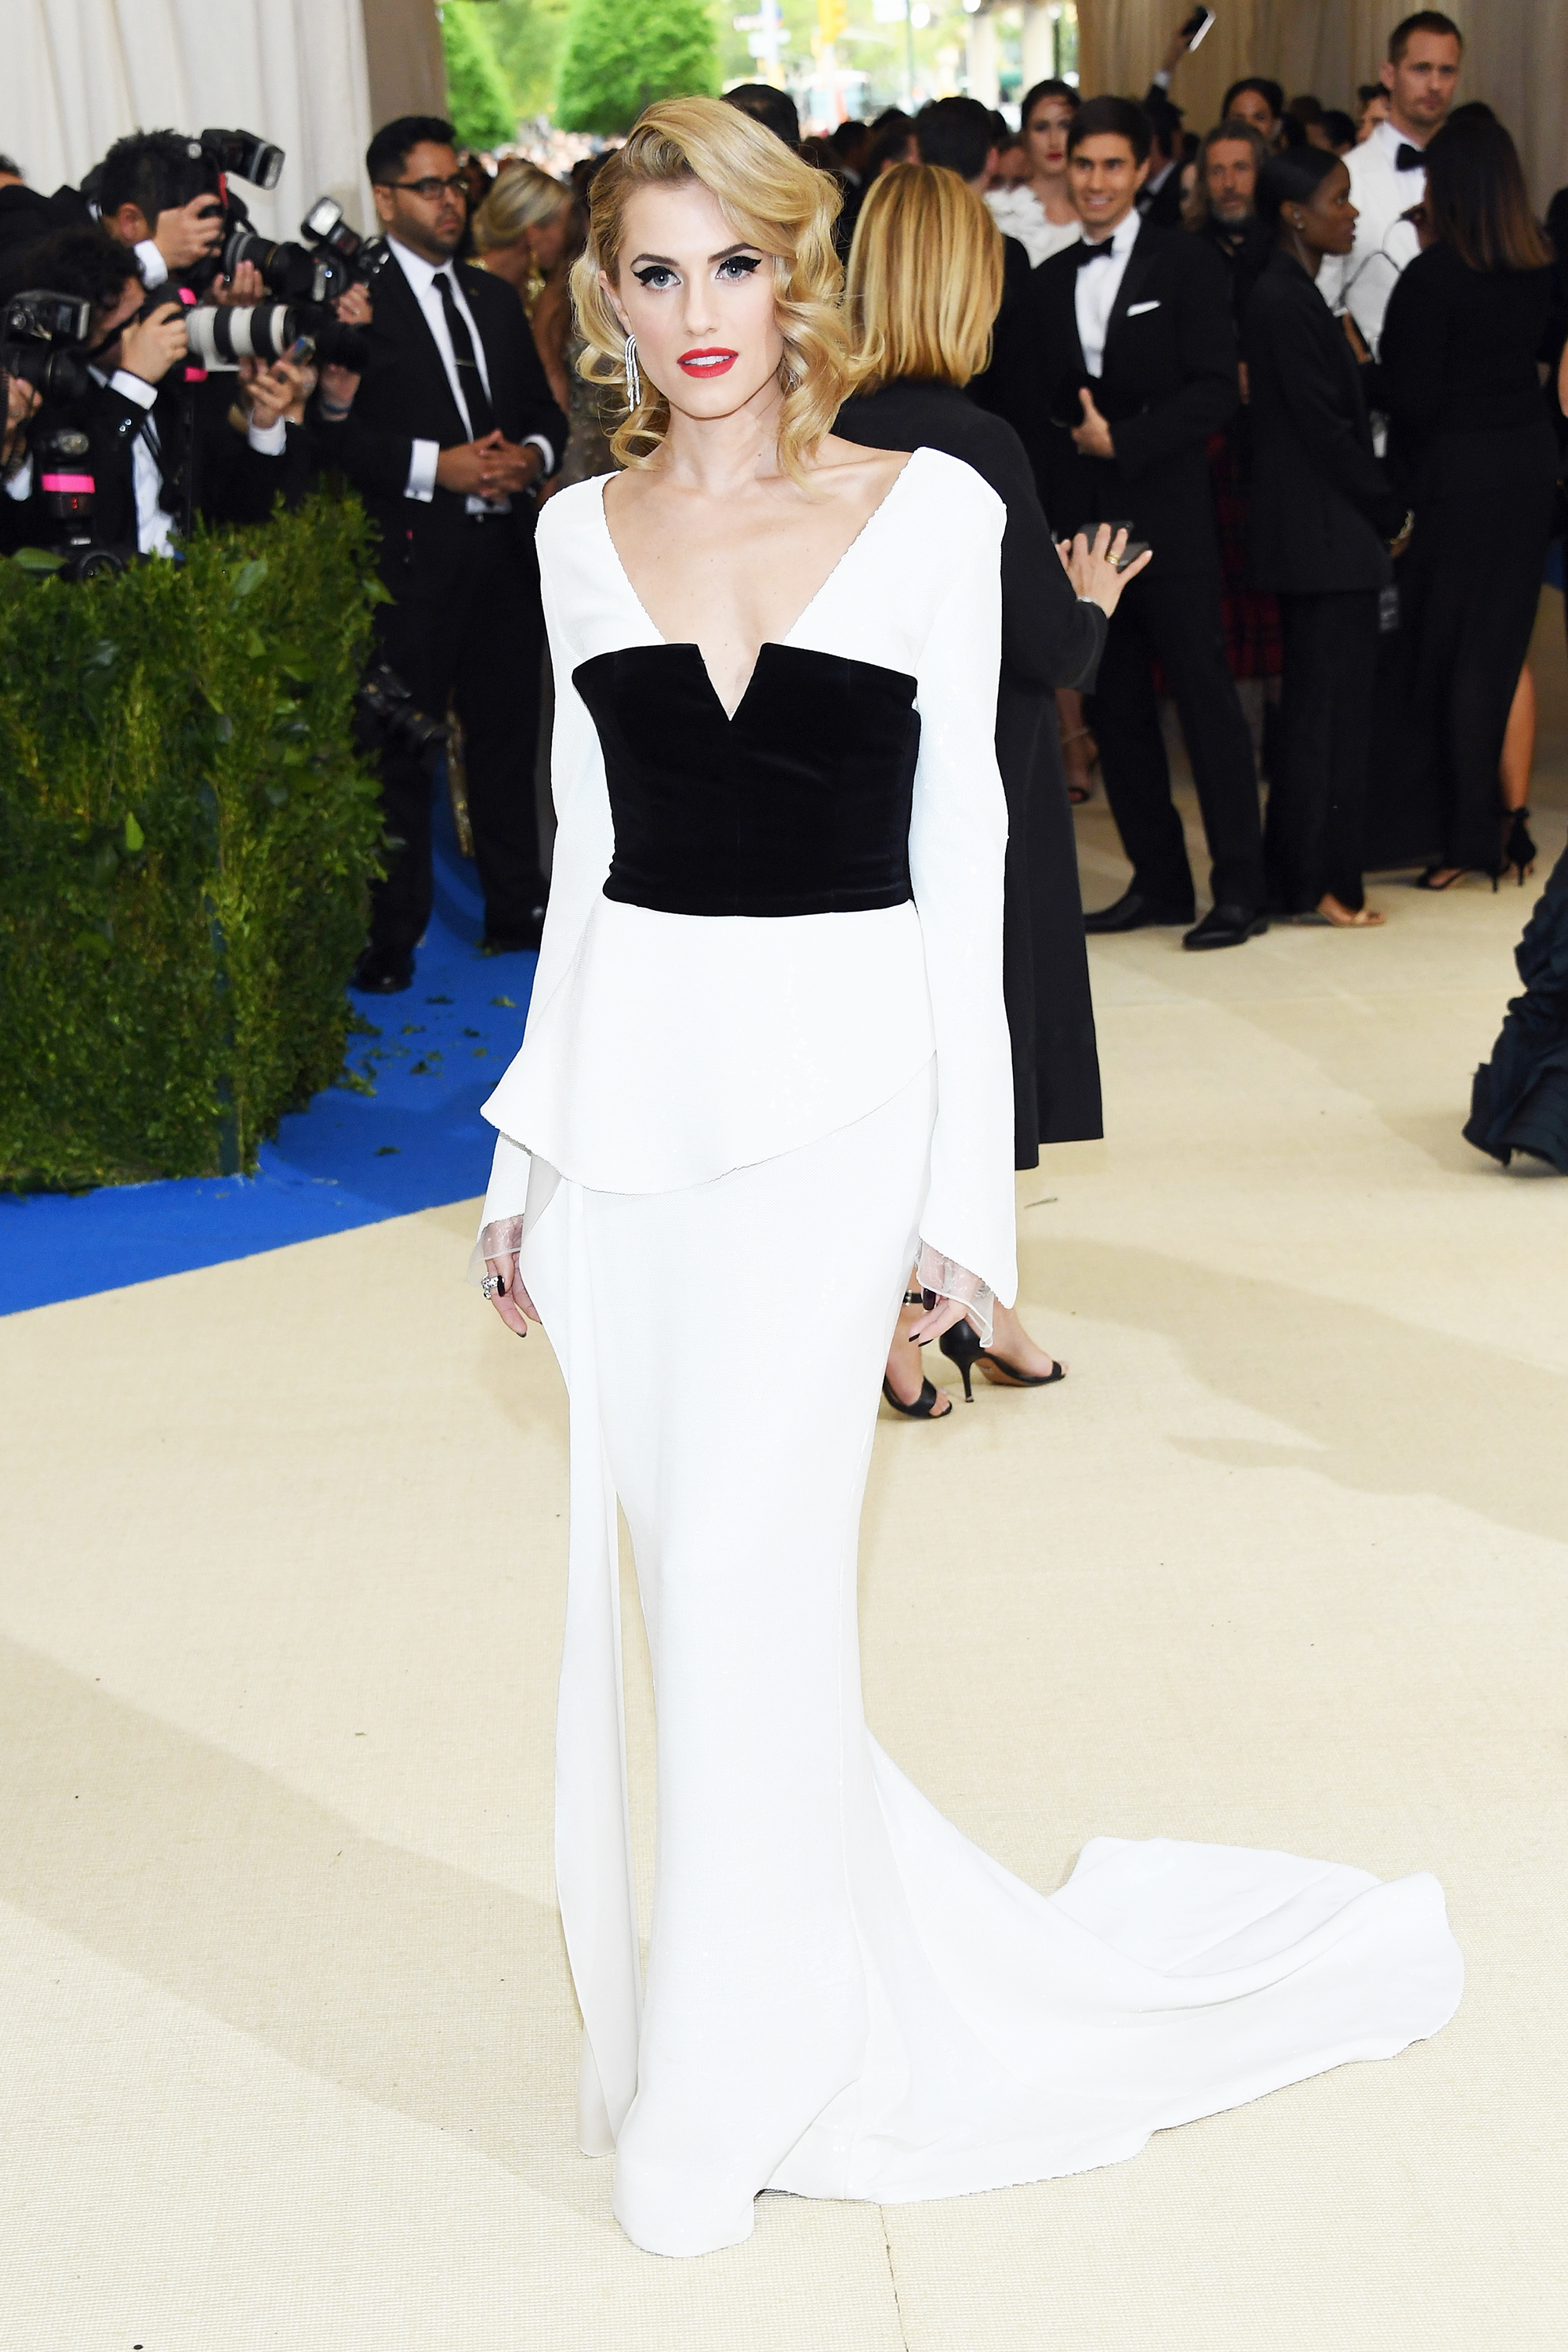 Allison Williams attends The Metropolitan Museum of Art's Costume Institute benefit gala celebrating the opening of the Rei Kawakubo/Comme des Garçons: Art of the In-Between exhibition in New York City, on May 1, 2017.